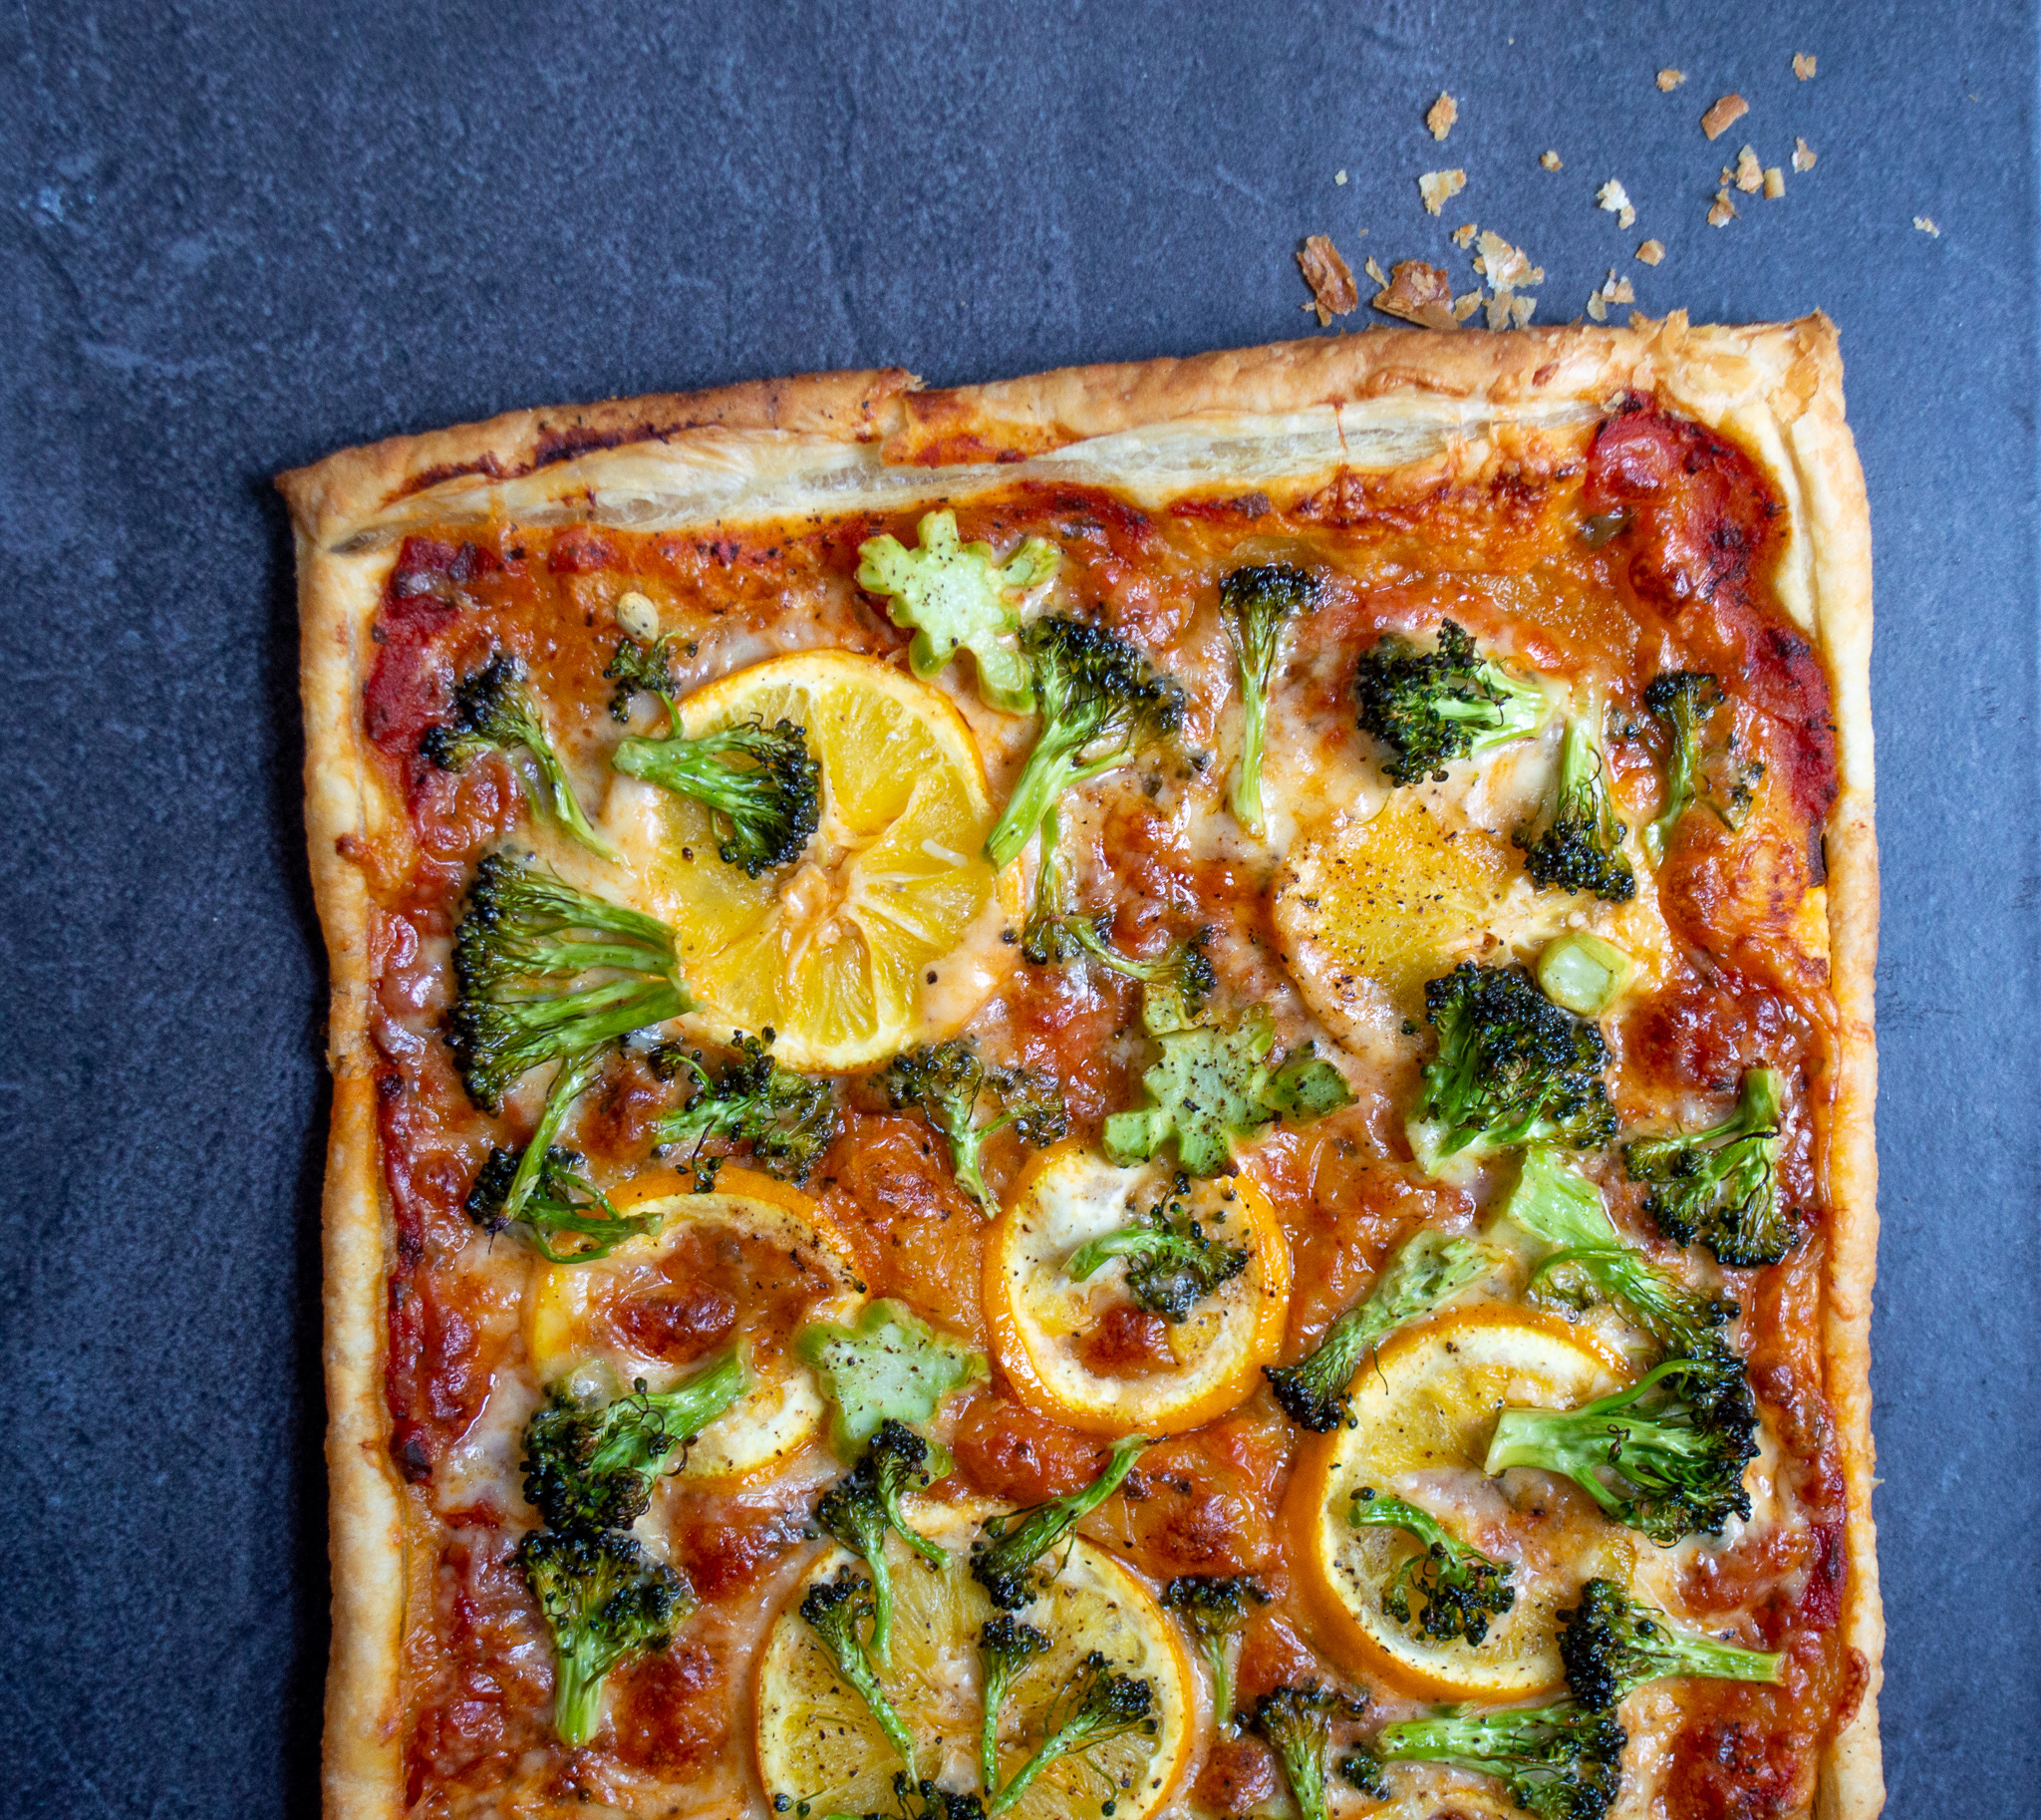 Savory Tart with Sliced Meyer Lemons and Broccoli